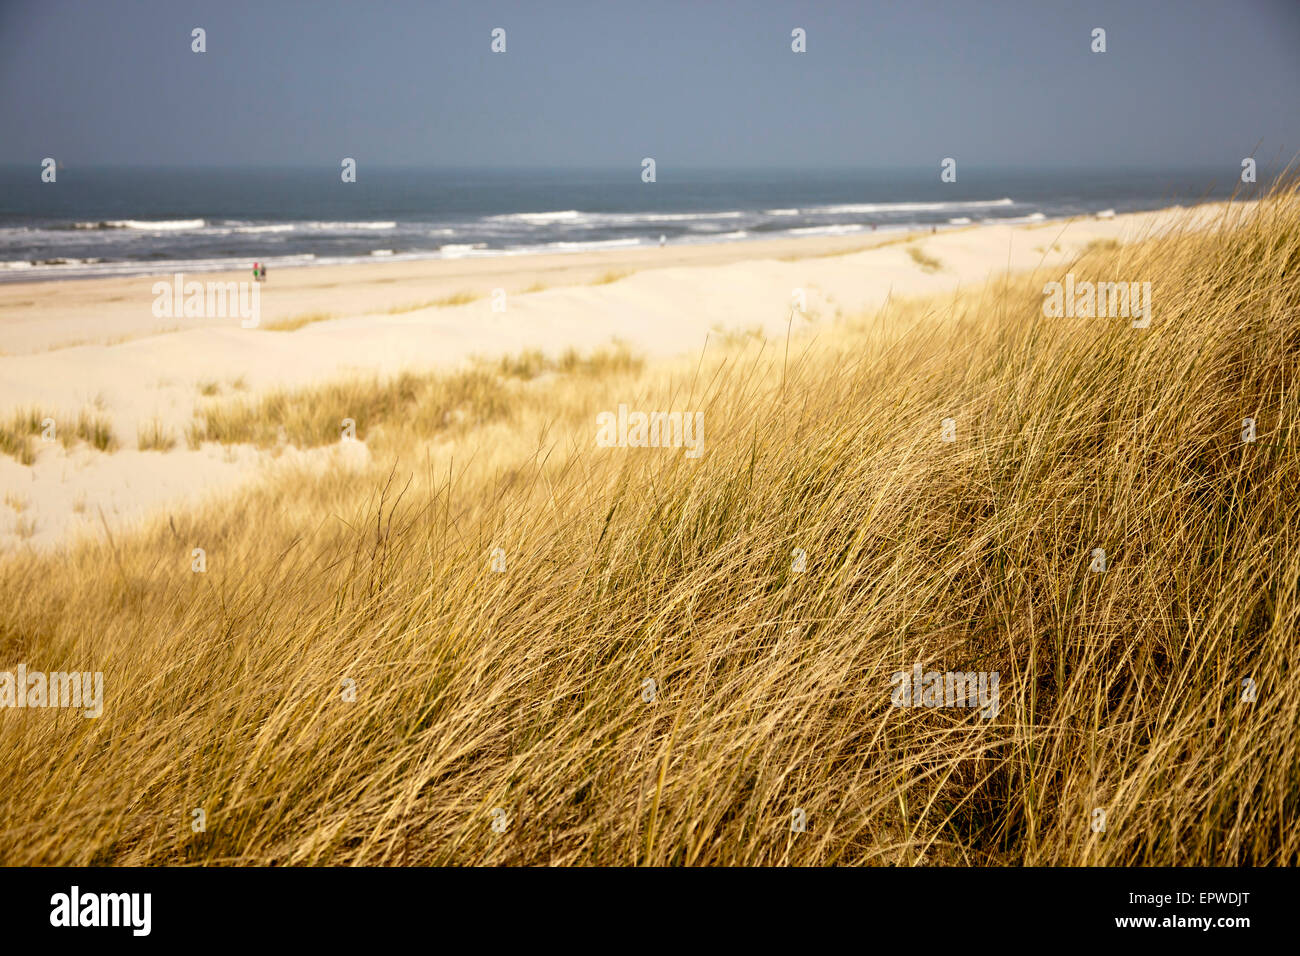 dunes and the main beach, East Frisian Island Spiekeroog, Lower Saxony, Germany Stock Photo